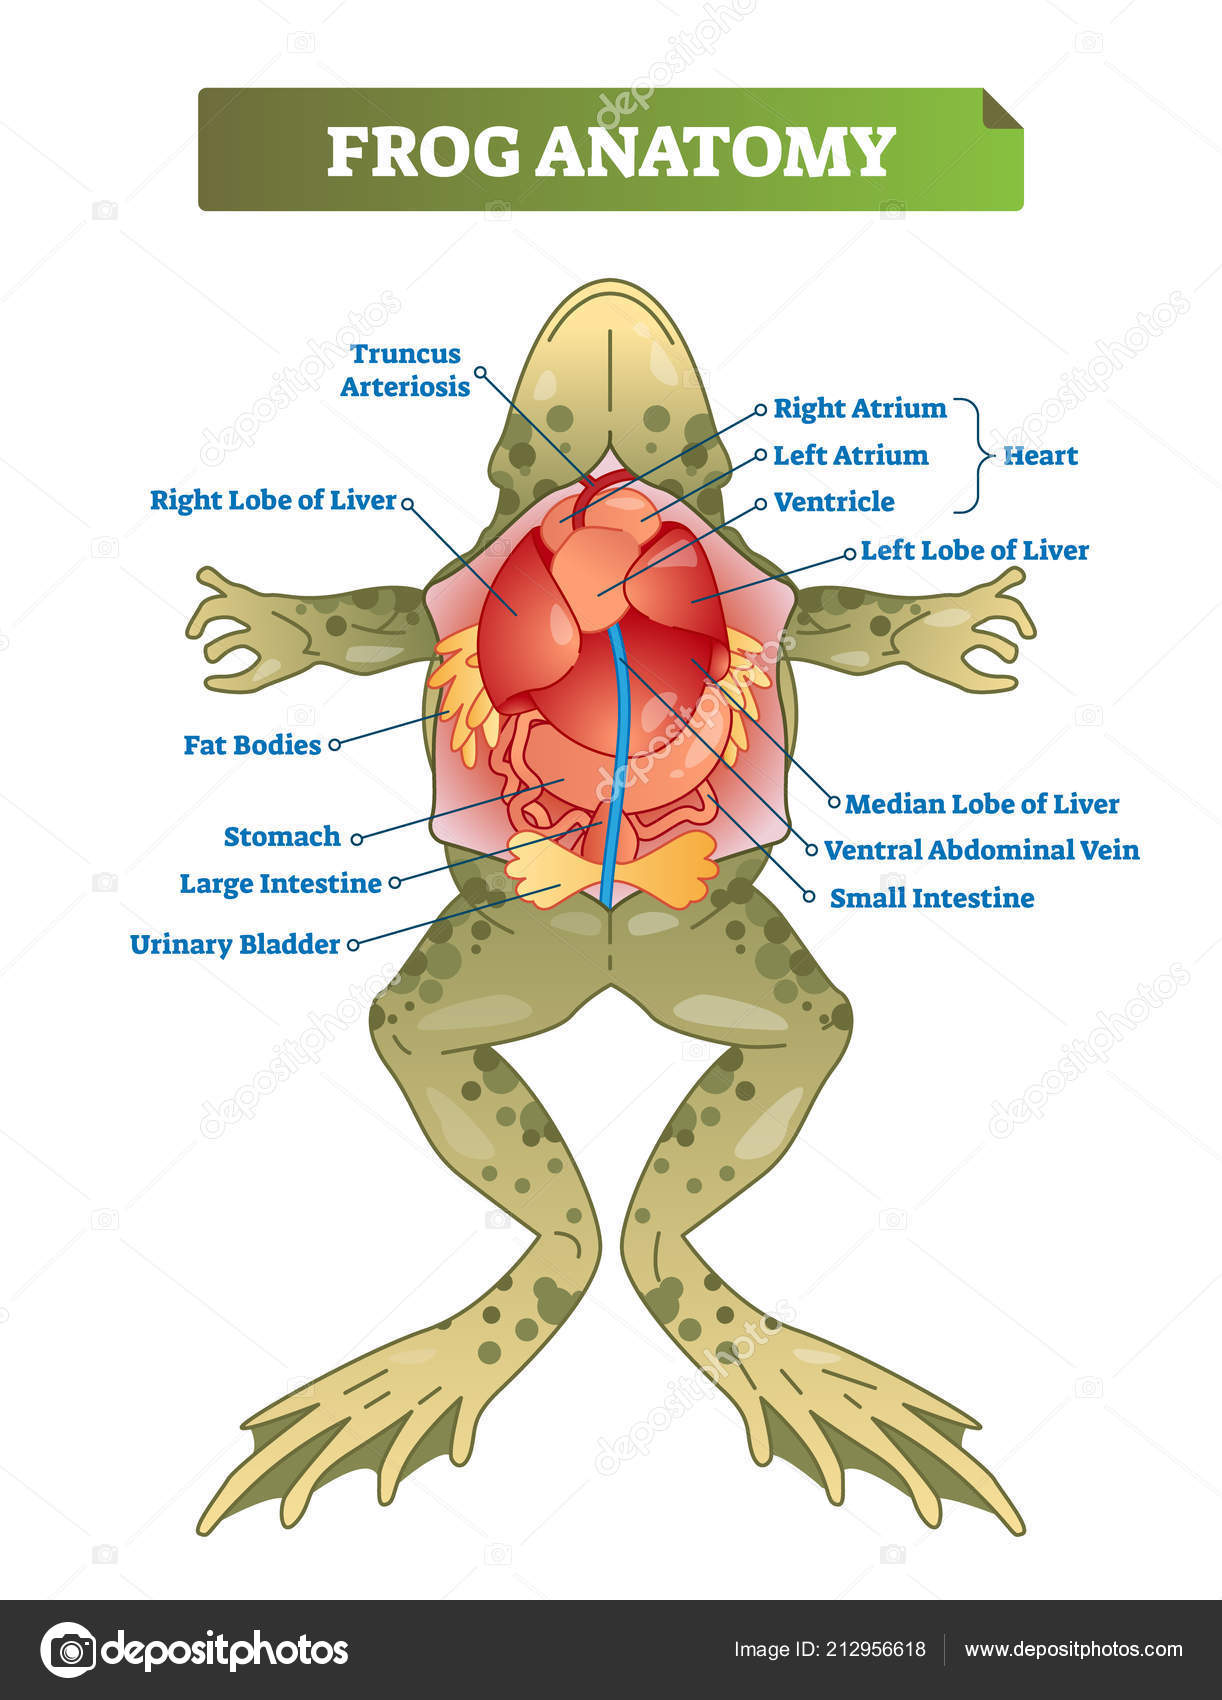 Frog Anatomy Diagrams